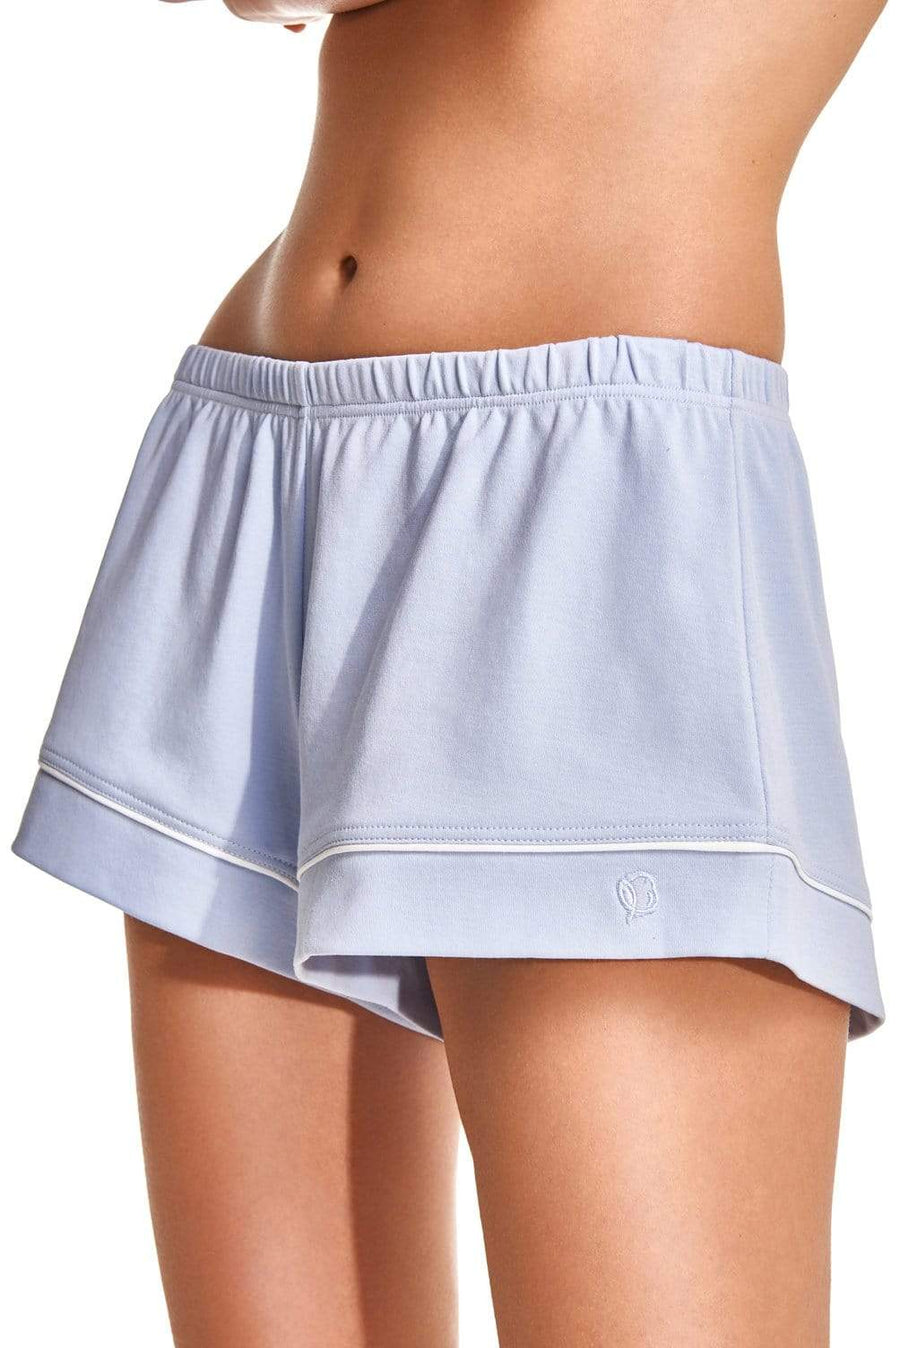 Slow Nature® Essentials Sleep & Loungewear SHORTS. Organisk bomull. bærekraftig moteetisk mote